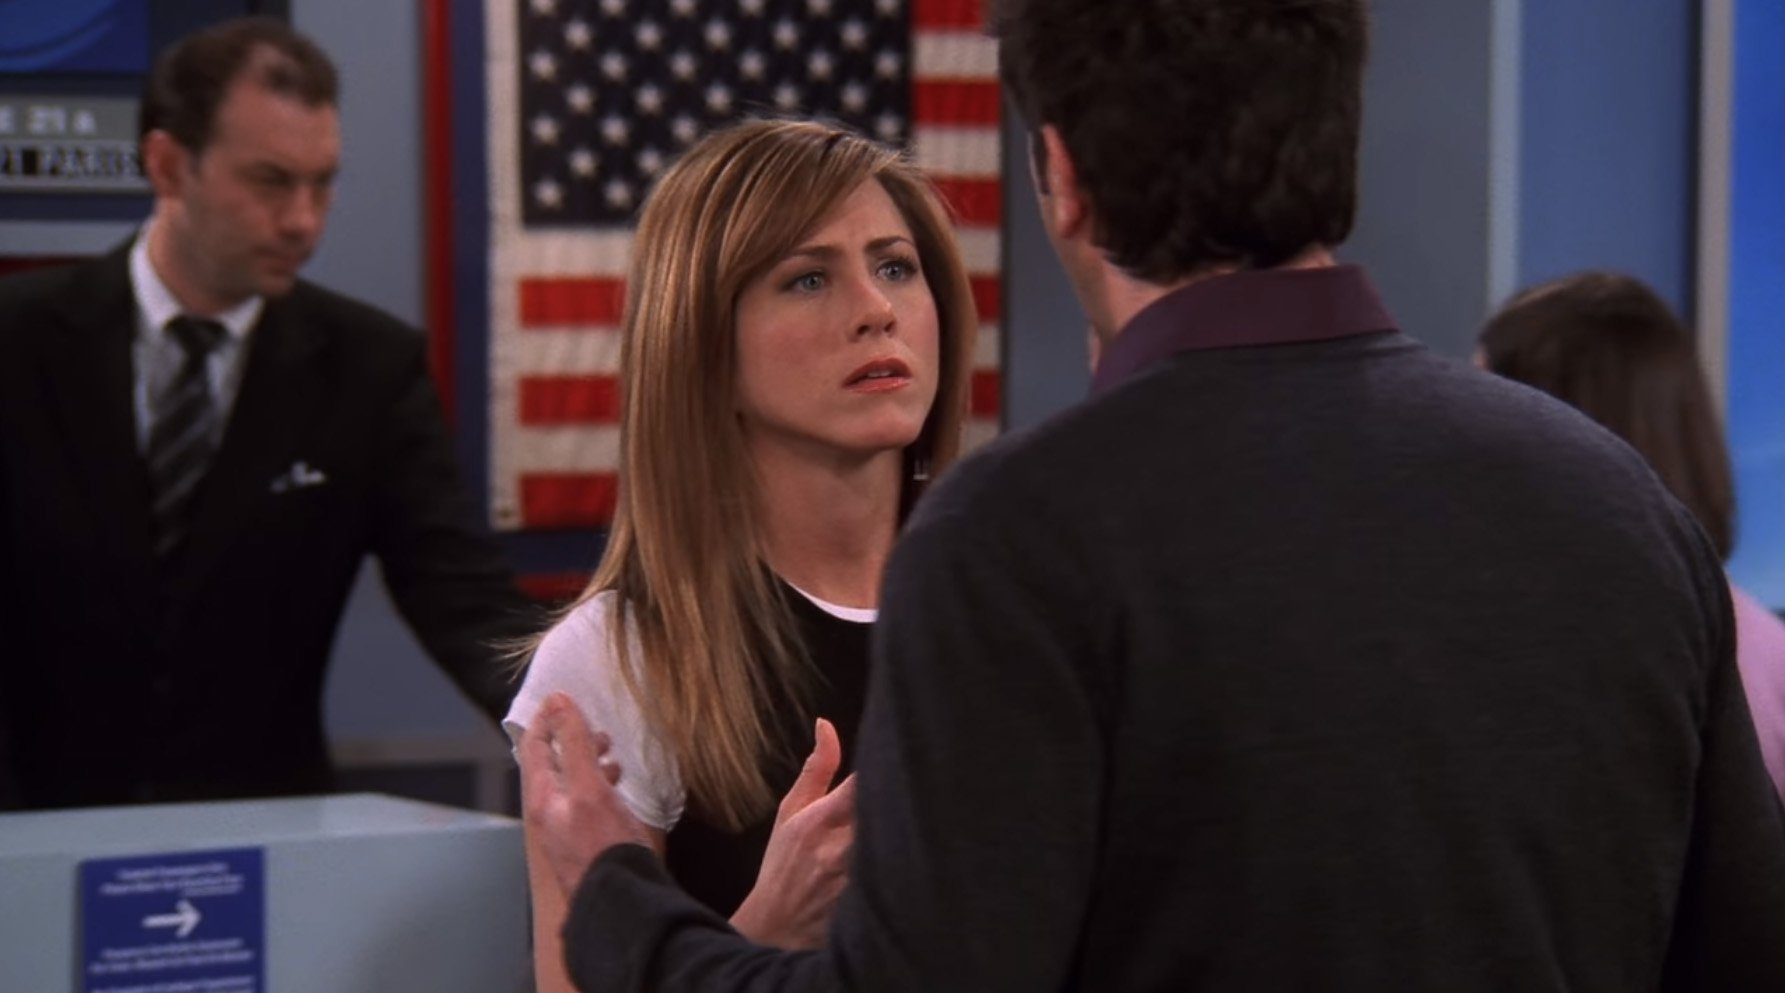 Ross was hellbent on ruining Rachel's career on Friends – she should have stayed on the plane